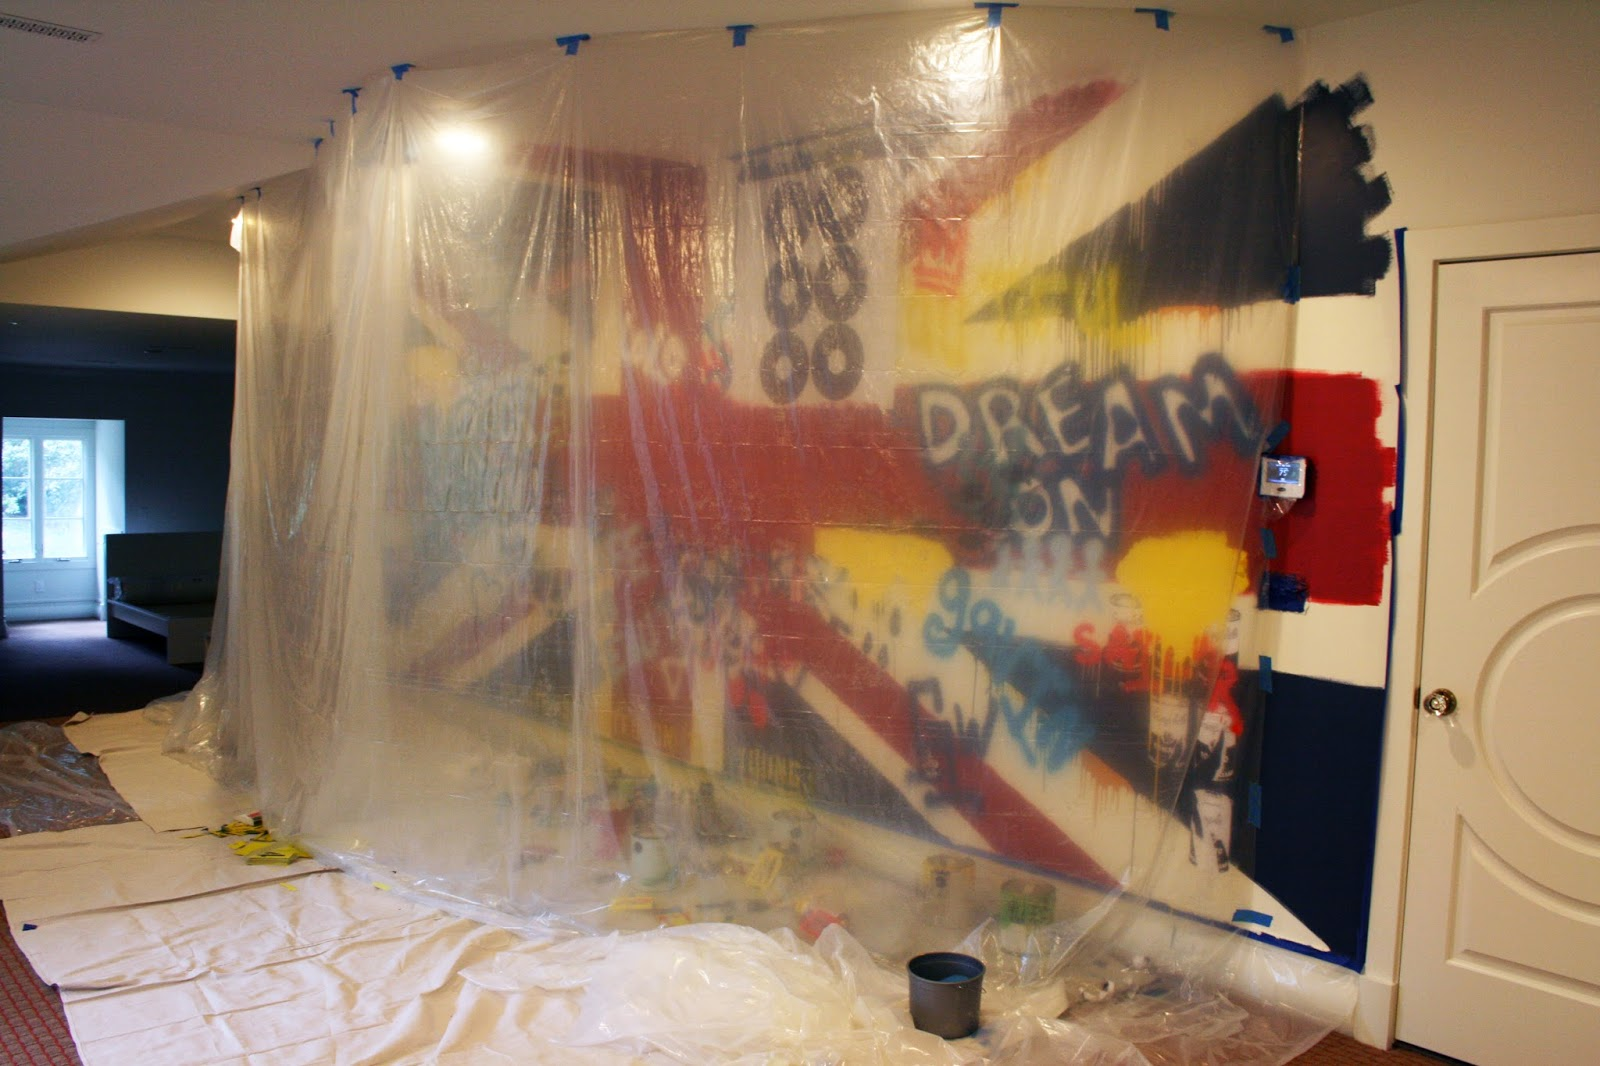 the Beatles Union Jack Painted Wall Mural progress